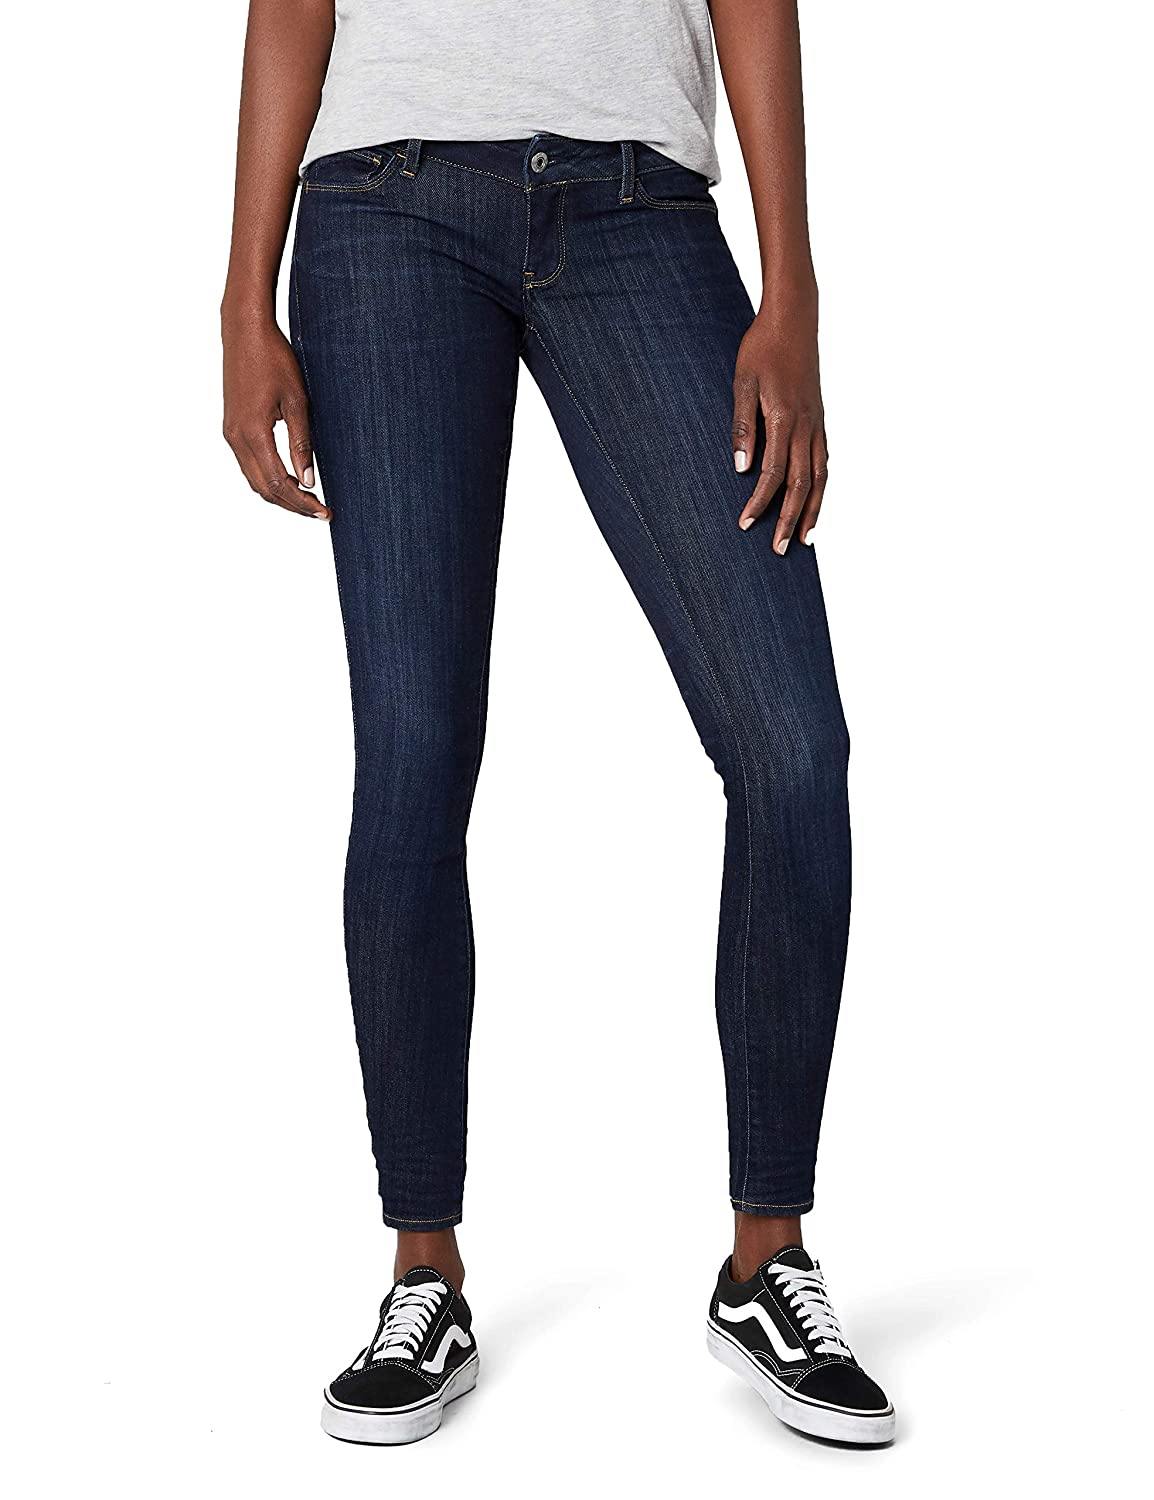 TALLA 31W / 34L. G-STAR RAW 3301 Deconst Low Skinny Wmn - Amazon Exclusive Style - Vaqueros Skinny Mujer